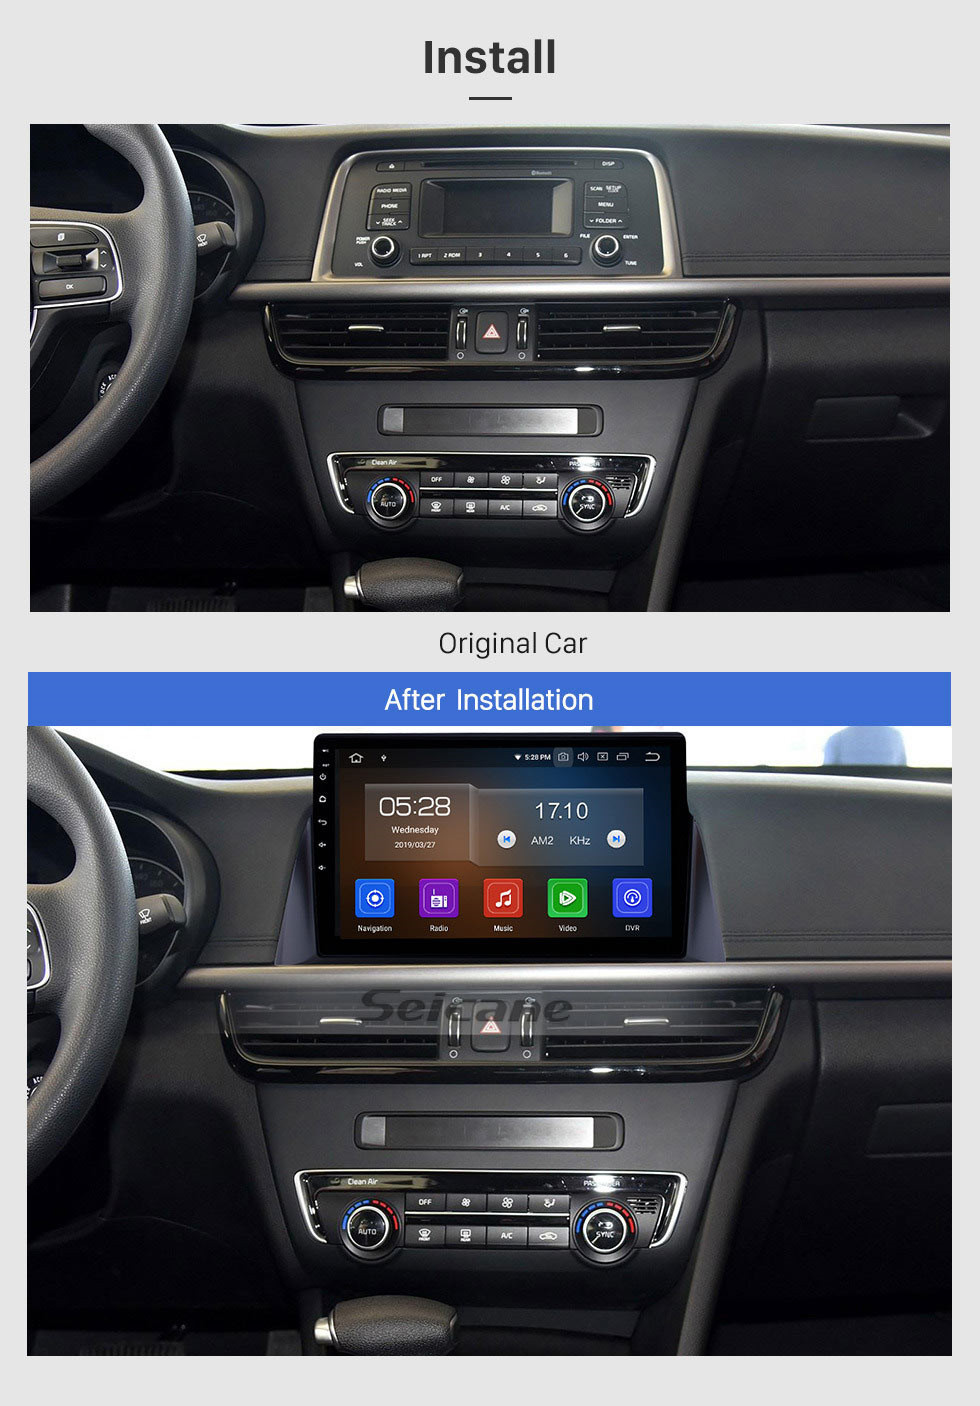 Seicane 2016 KIA K5 OPTIMA Radio Replacement with Android 10.0 DVD Player GPS Navigation System Touch Screen 3G WiFi Link Mirror OBD2 Video Control Steering Wheel USB SD Rear View Camera